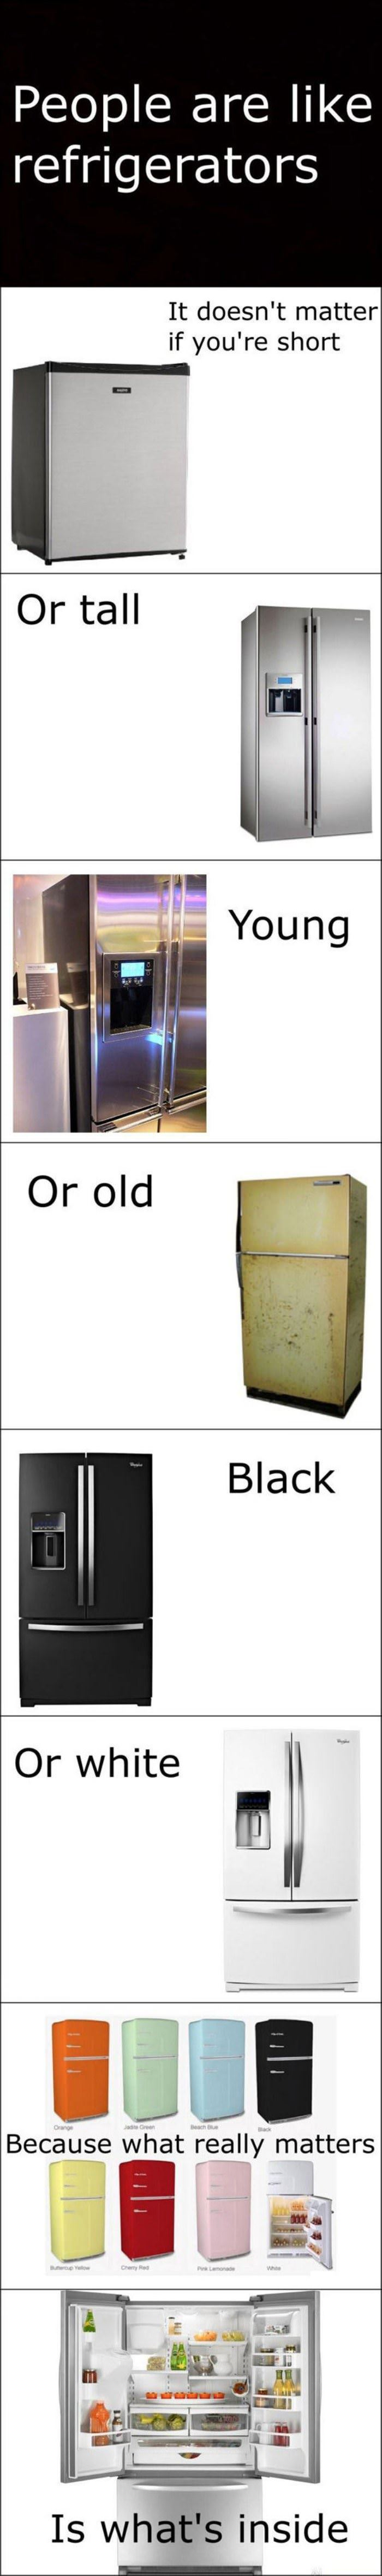 people are like refrigerators funny picture